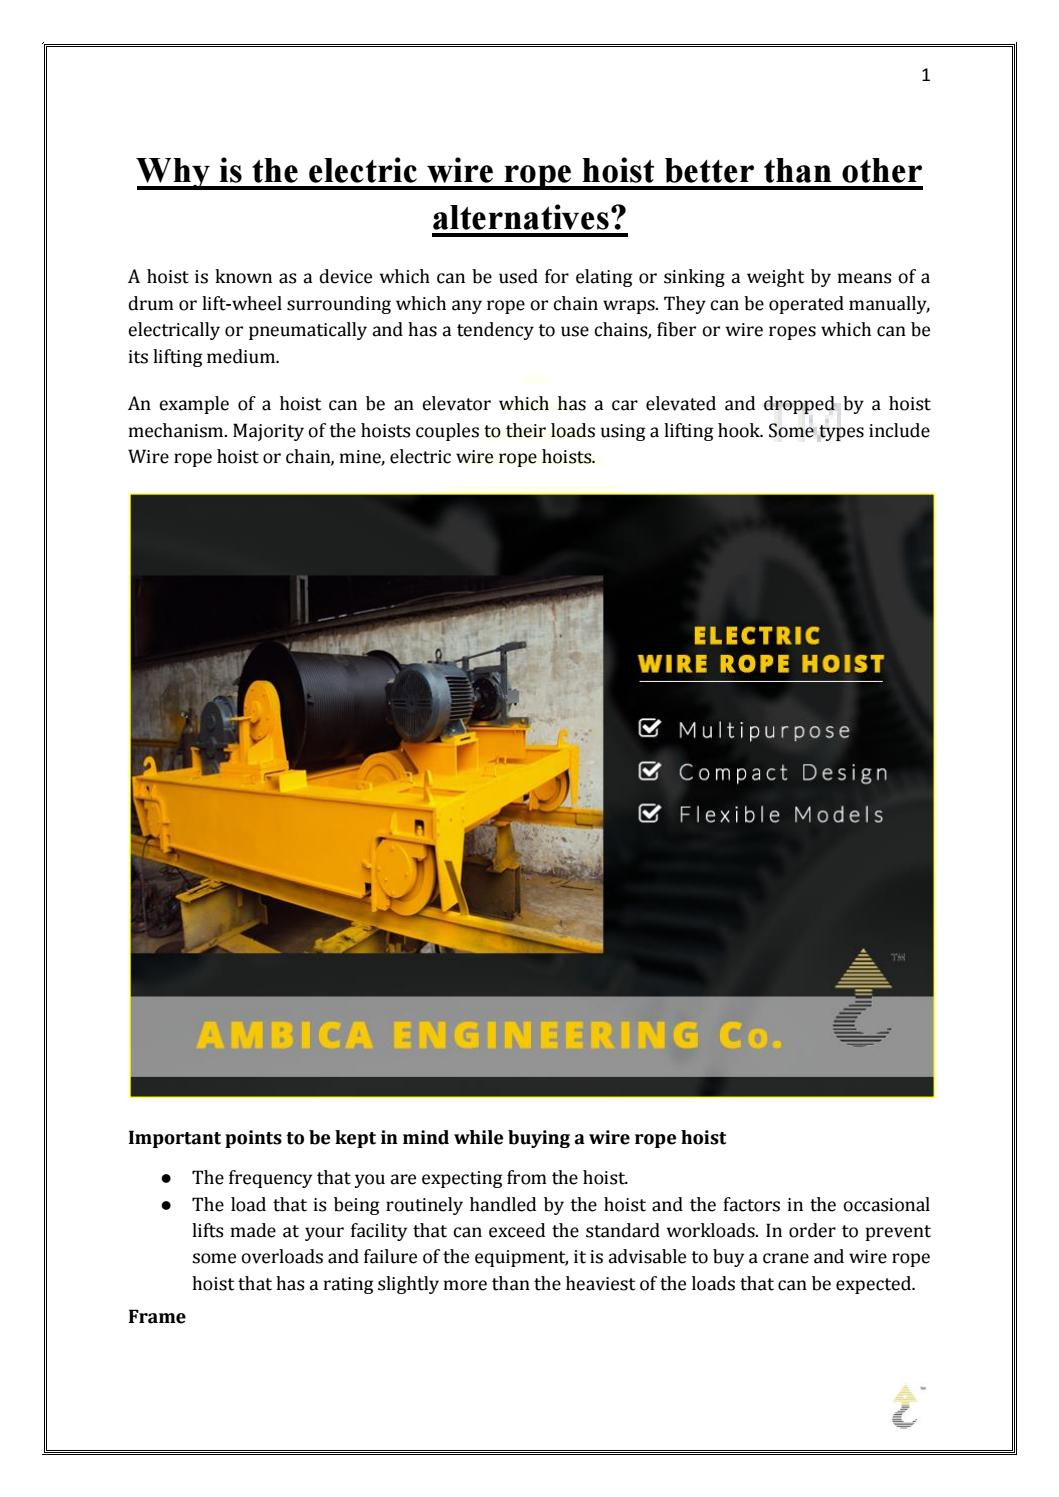 Why is the electric wire rope hoist better than other alternatives ...